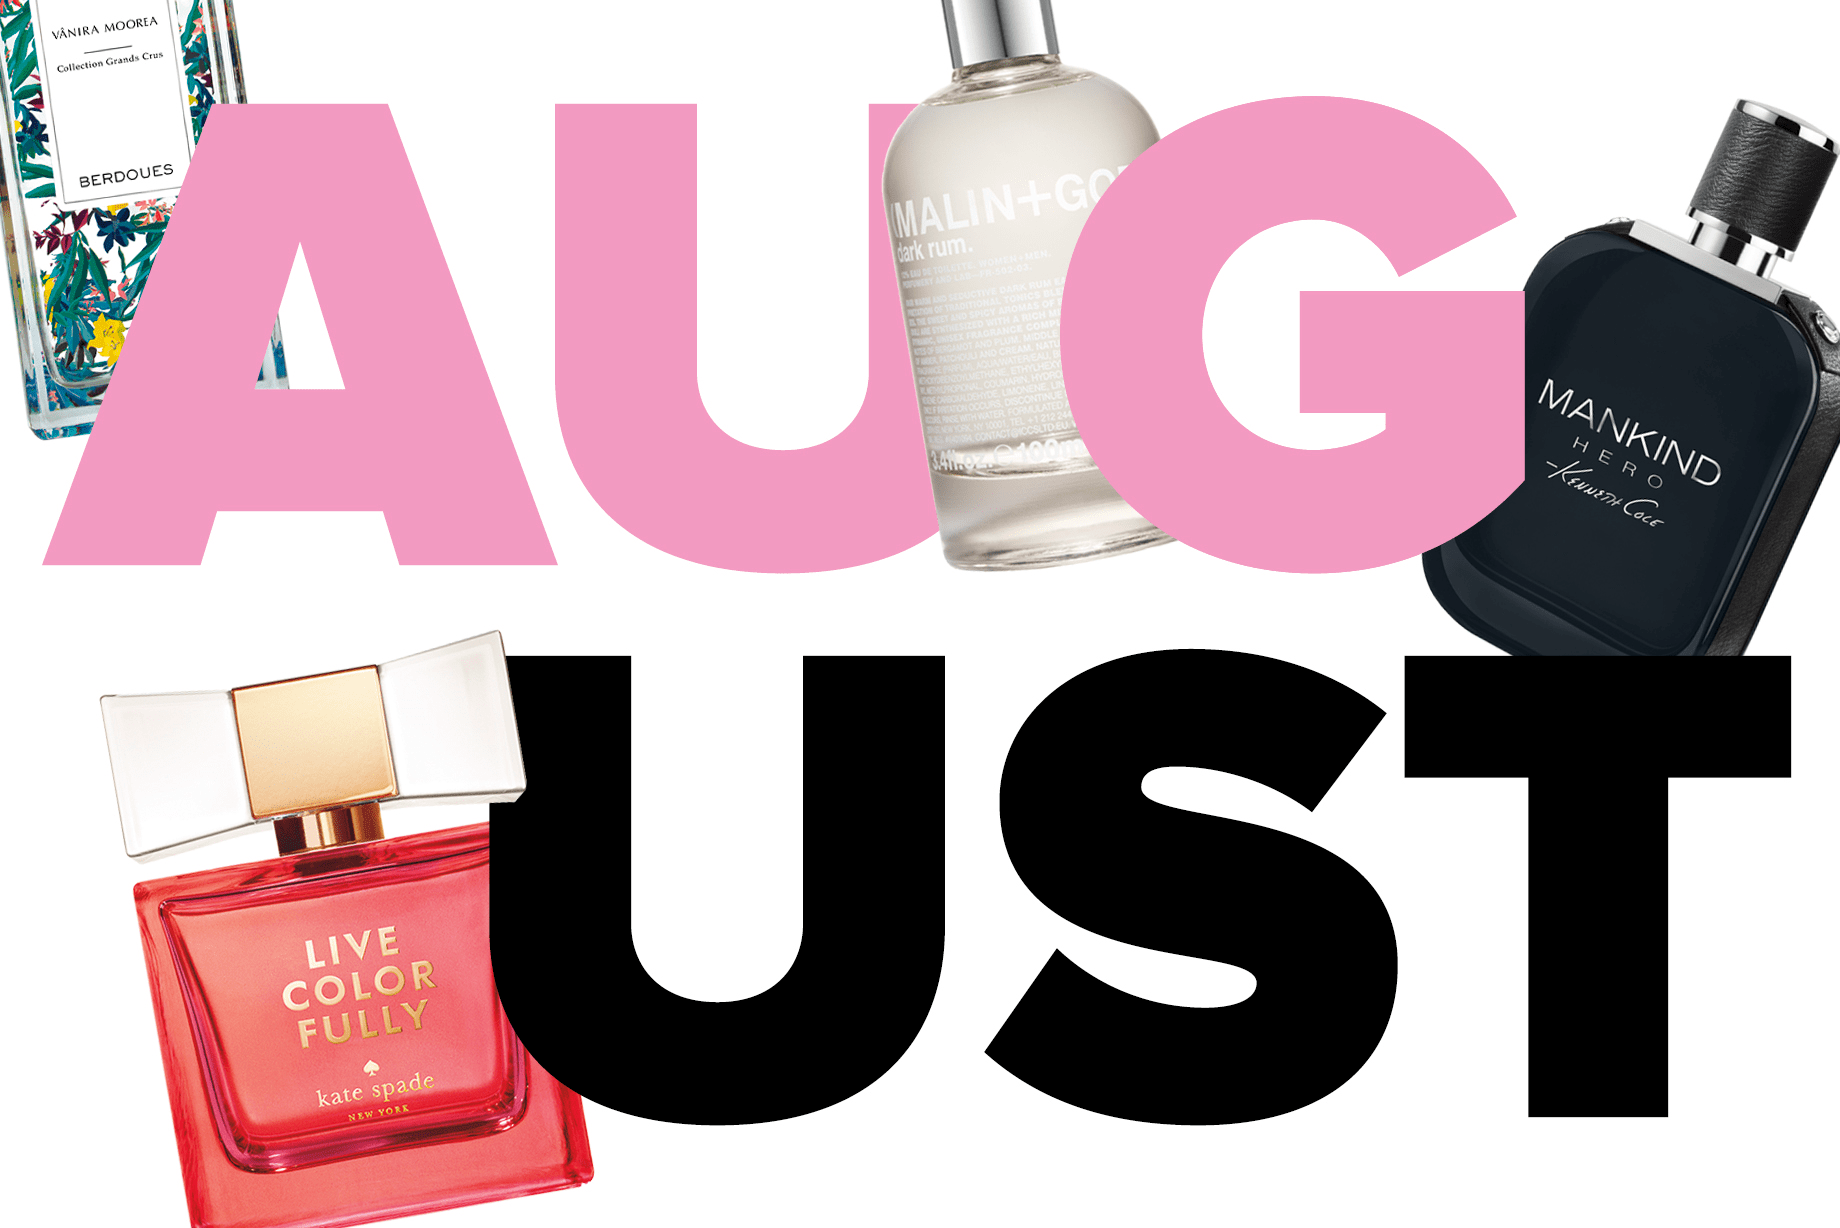 Born in August: Personality Traits and Perfume Match